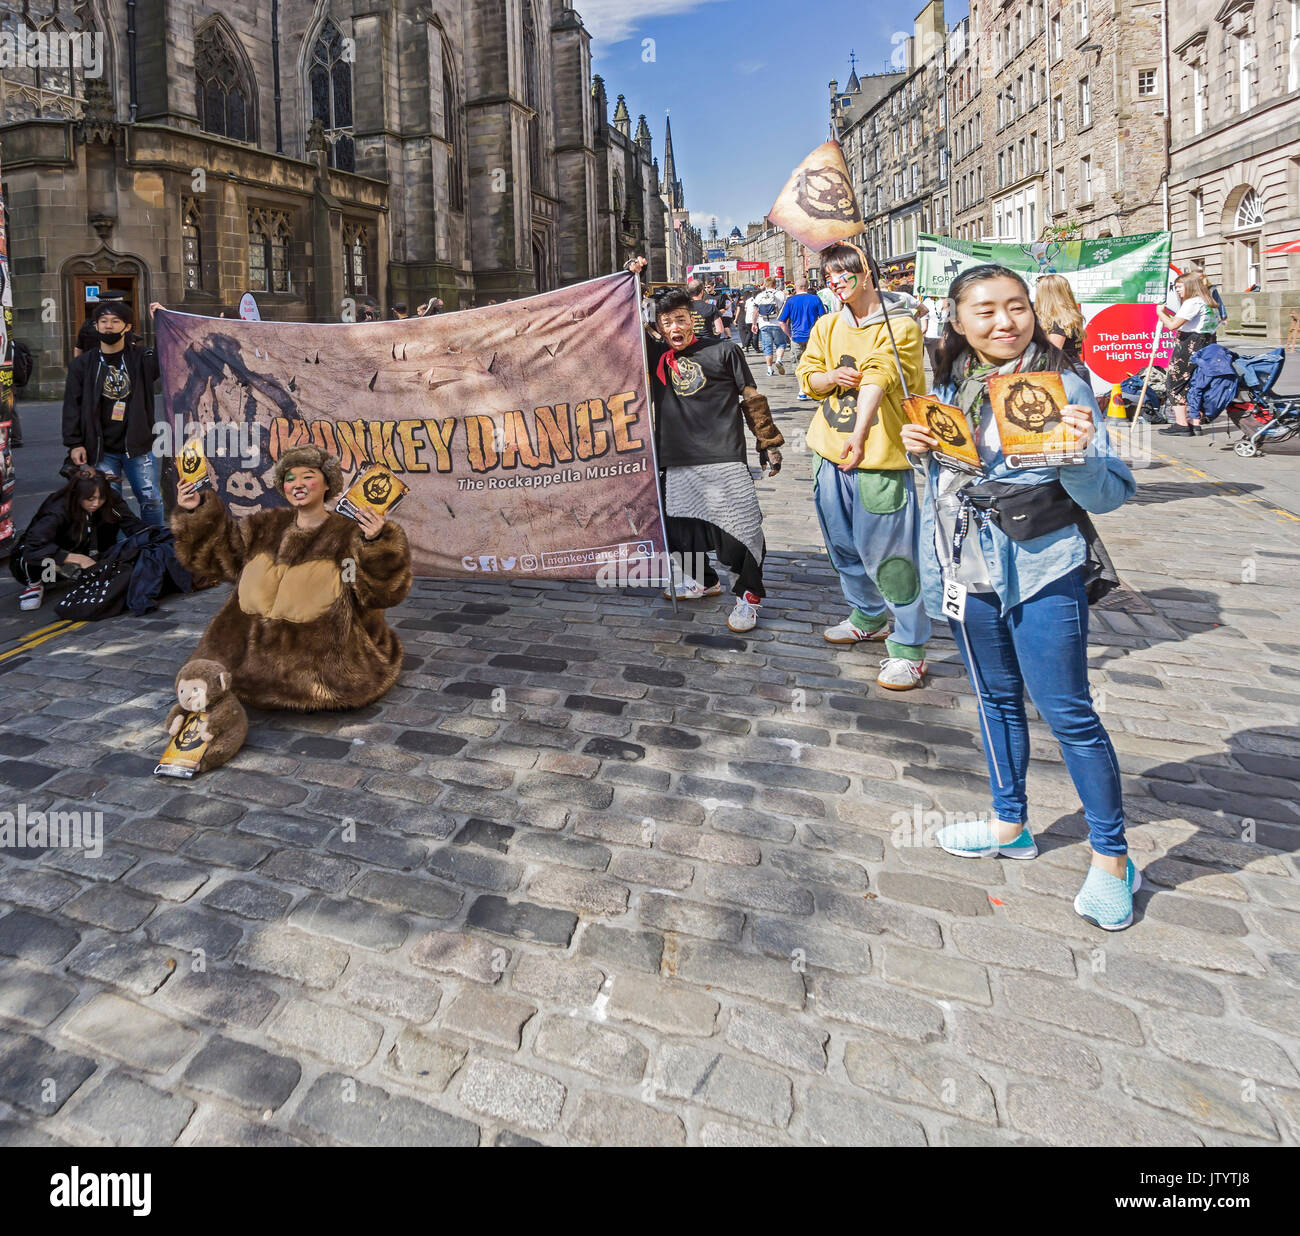 GGIRI & WINS from Korea promoting their show Monkey Dance at Edinburgh Festival Fringe 2017 in the High Street of the Royal Mile Edinburgh Scotland UK - Stock Image